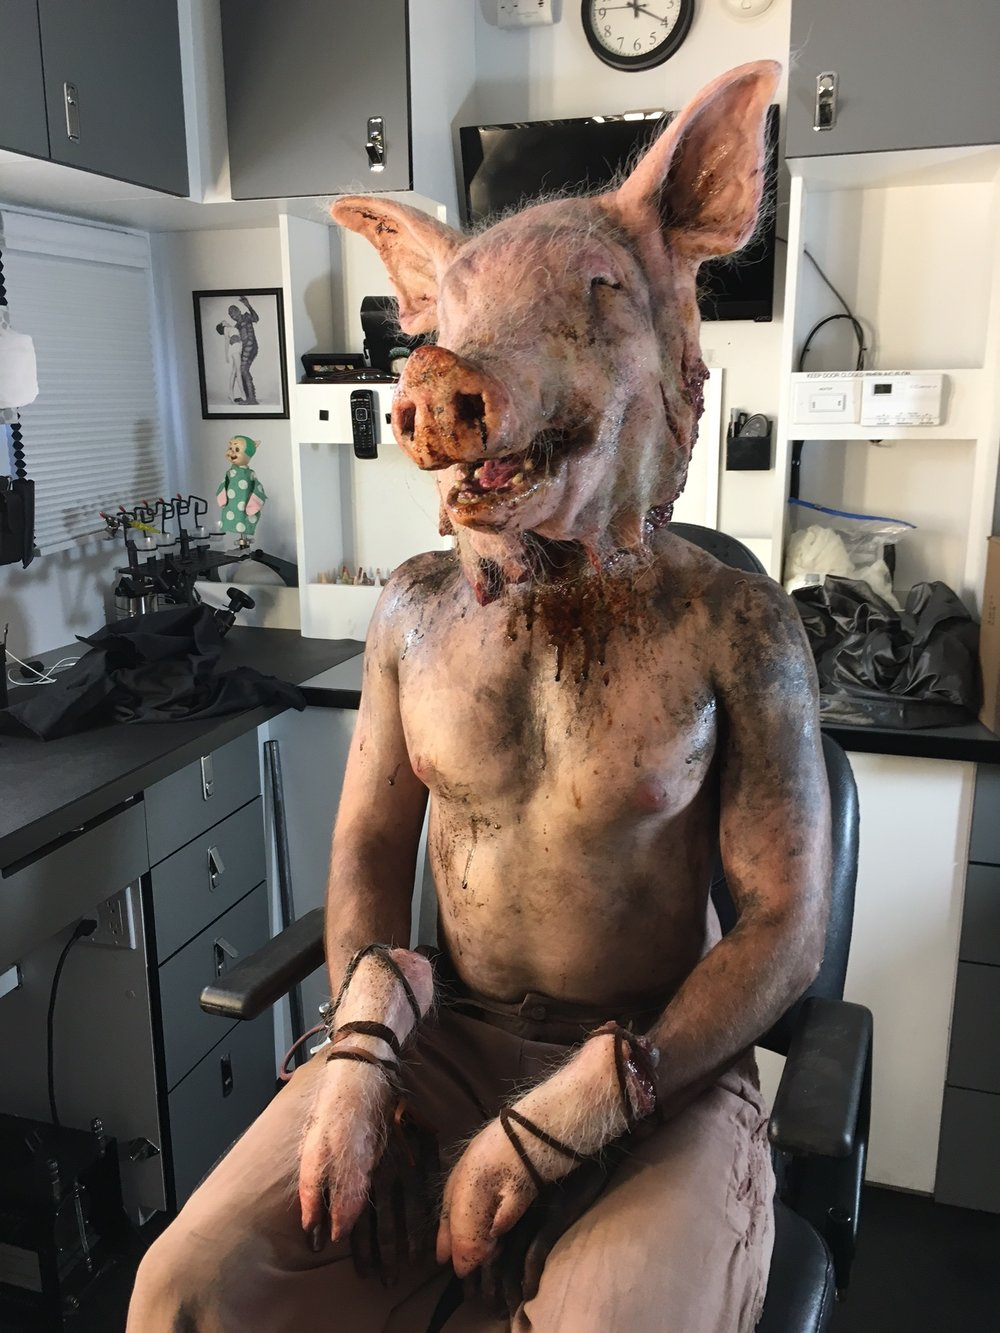 piggy man - american horror story: roanoke